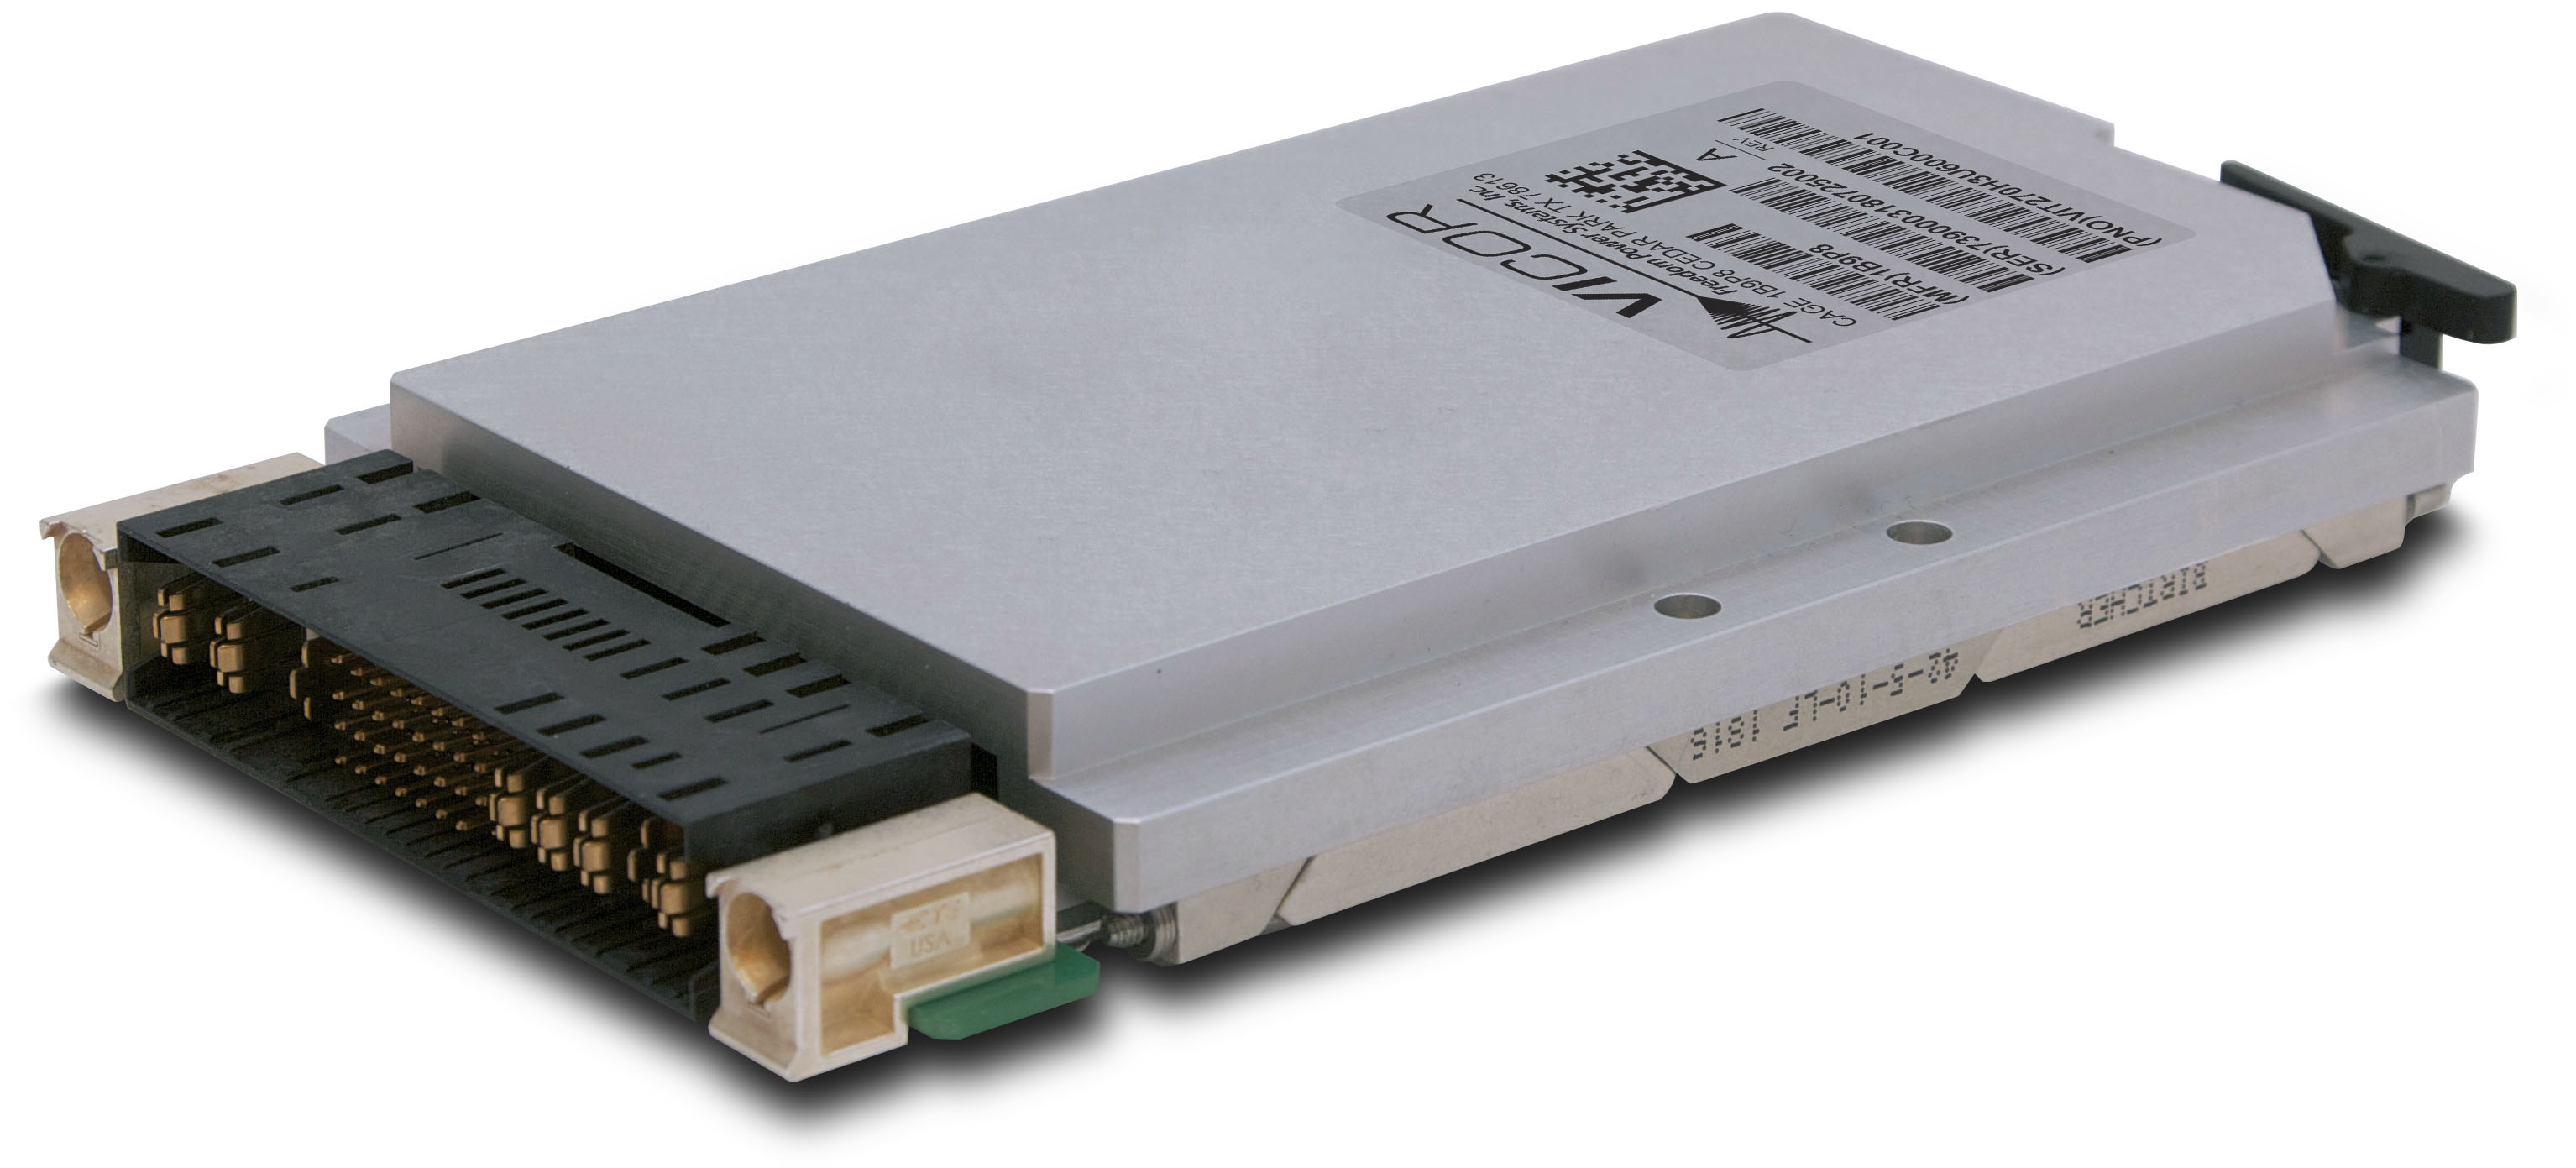 VITA 62 Power Supplies for MIL-COTS VPX Applications